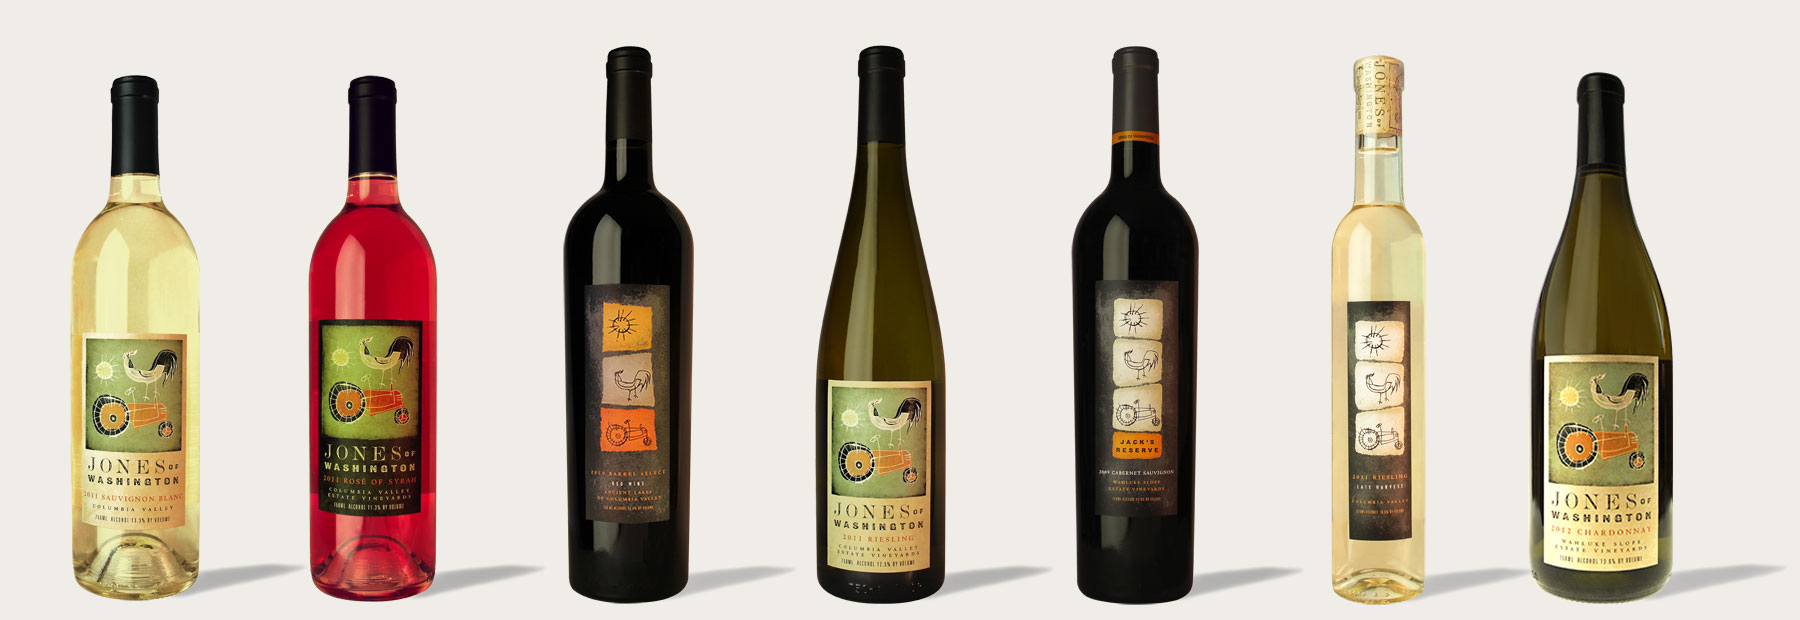 Wines-Front-2